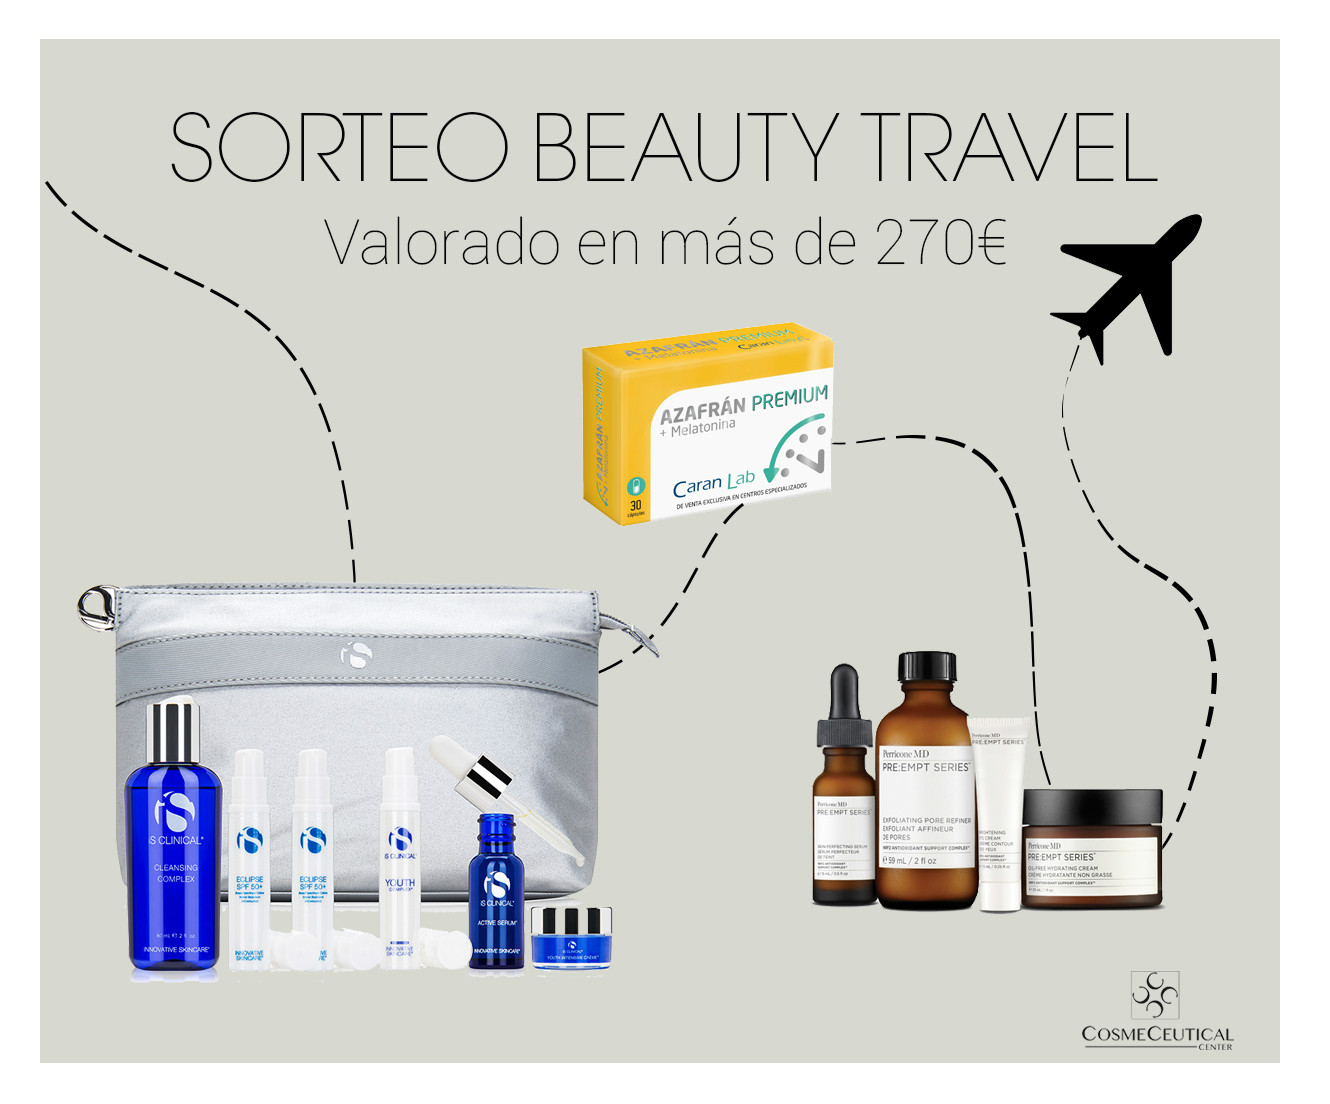 SORTEO BEAUTY TRAVEL